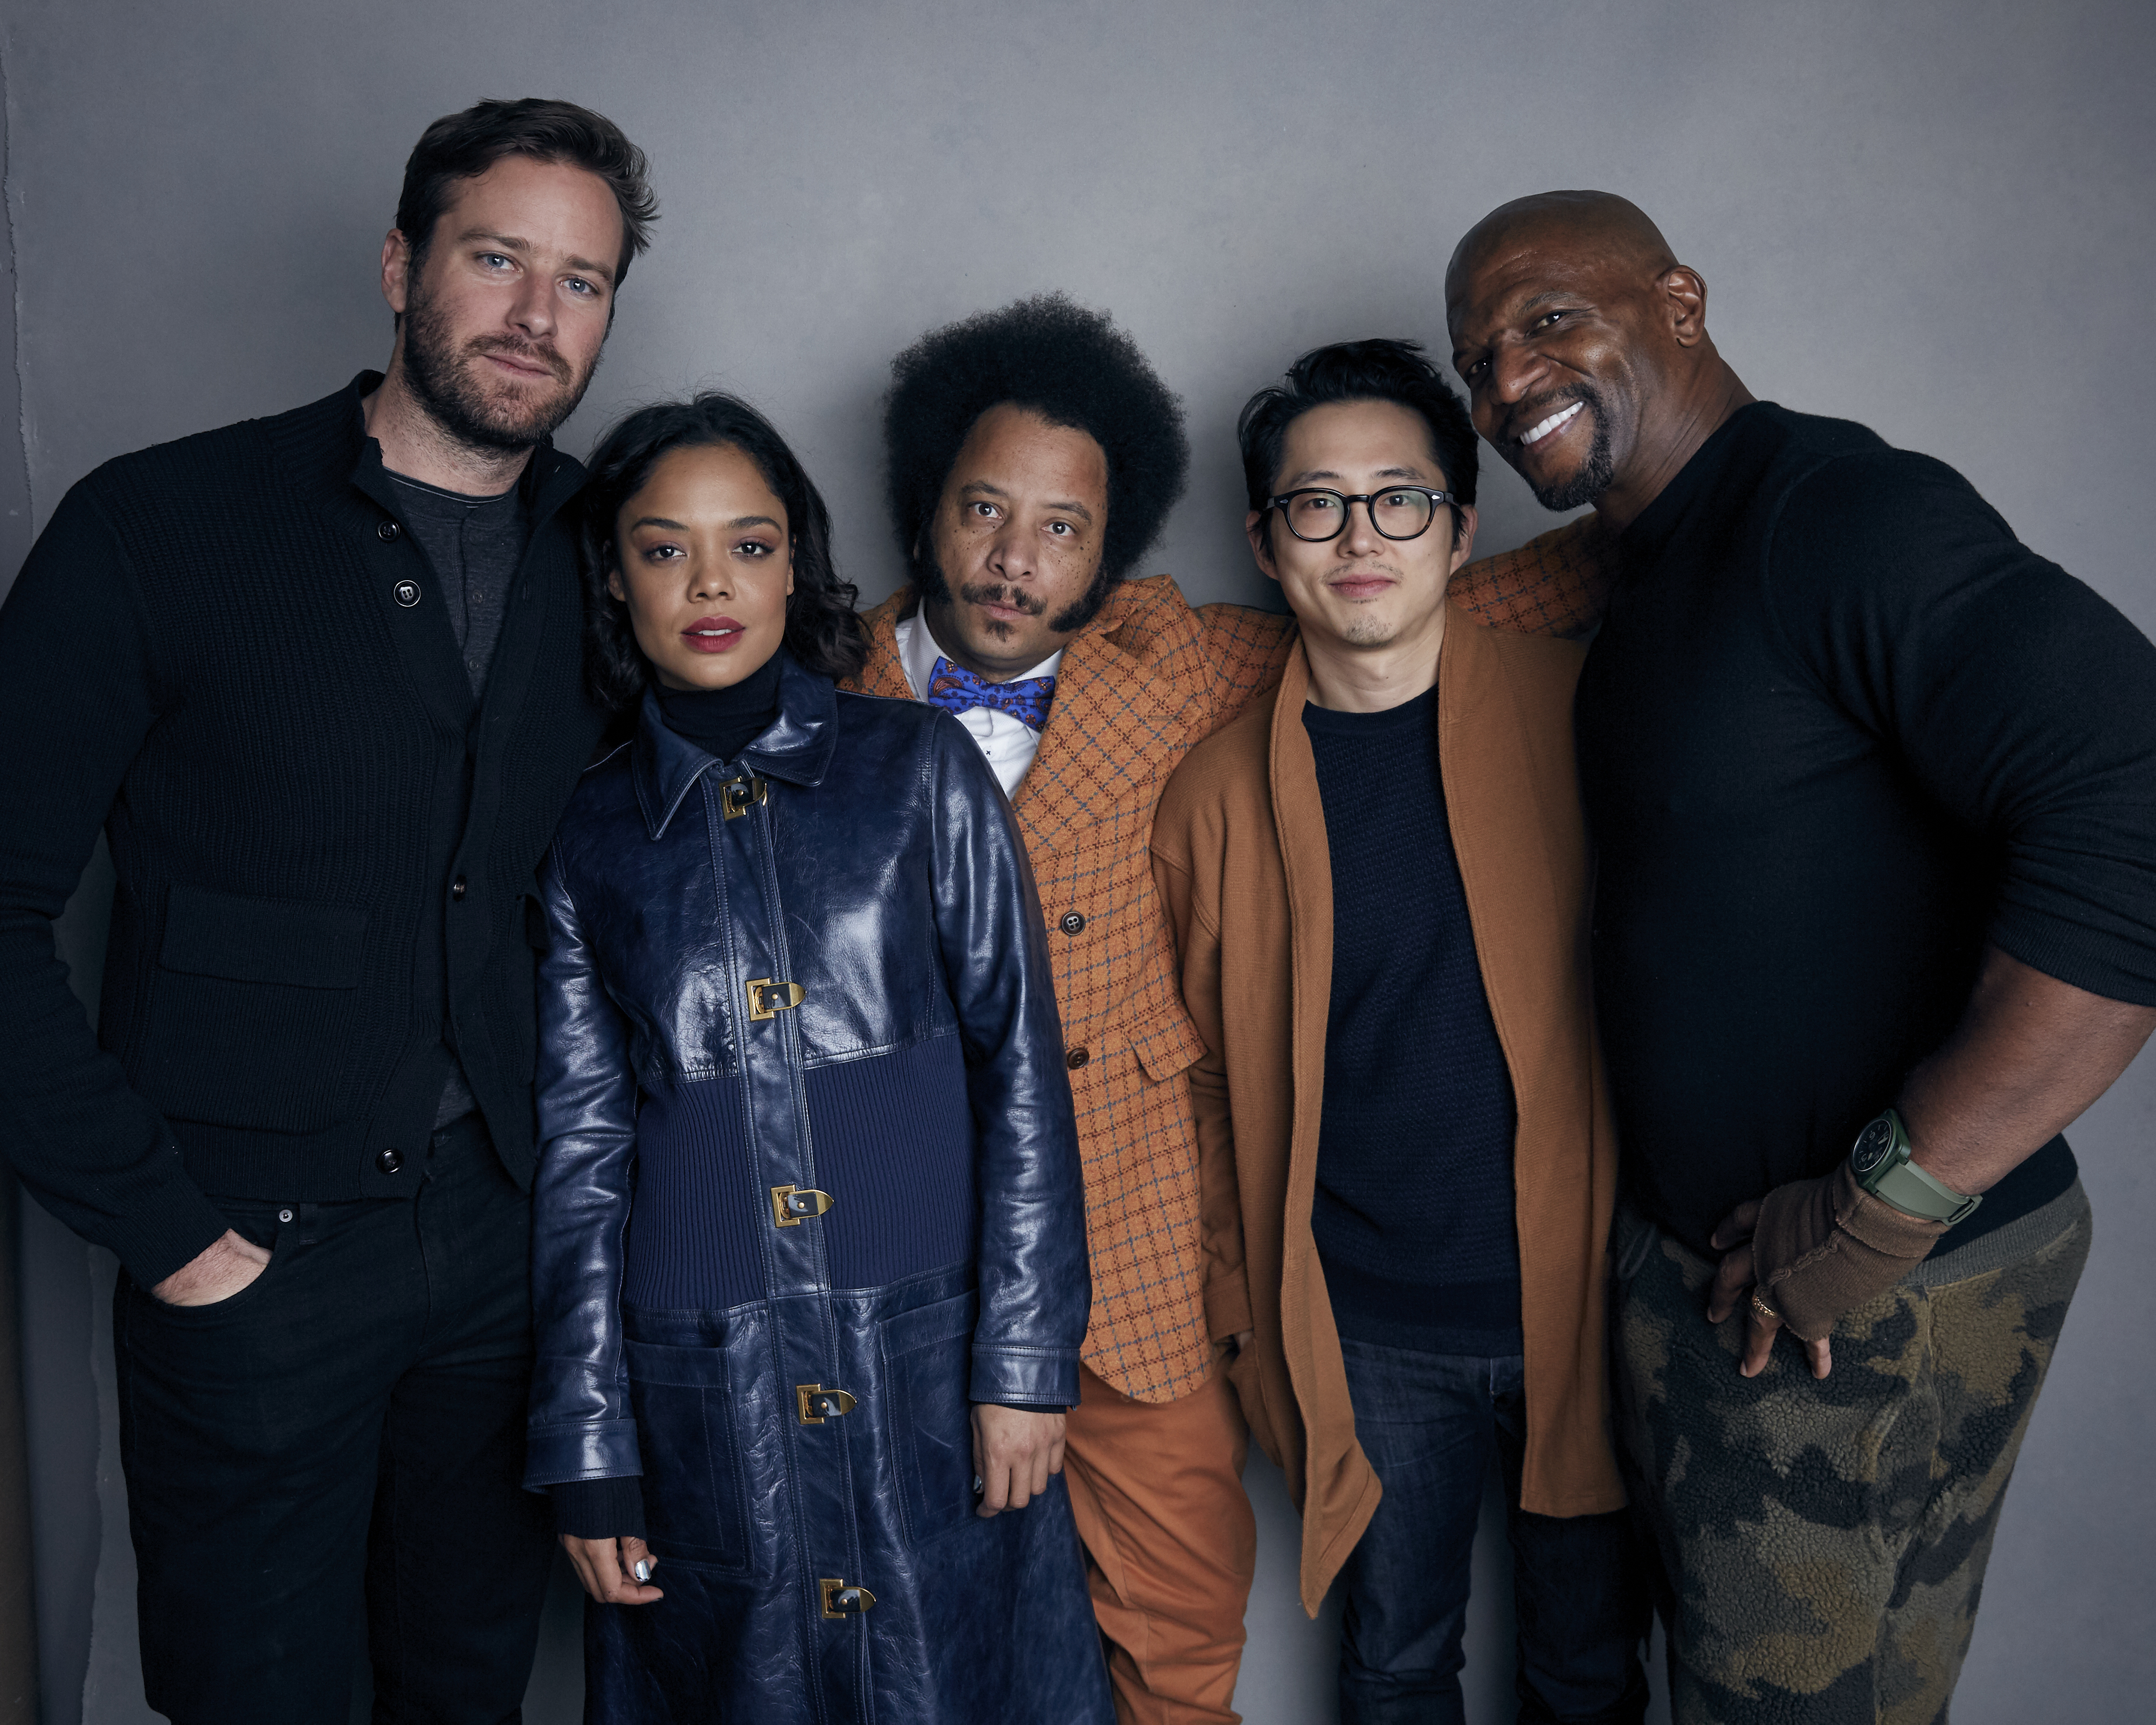 """(File photo by Taylor Jewell, Invision via Associated Press) Armie Hammer, from left, Tessa Thompson, director Boots Riley, Steven Yeun and Terry Crews pose for a portrait to promote """"Sorry to Bother You""""  during the 2018 Sundance Film Festival in Park City."""